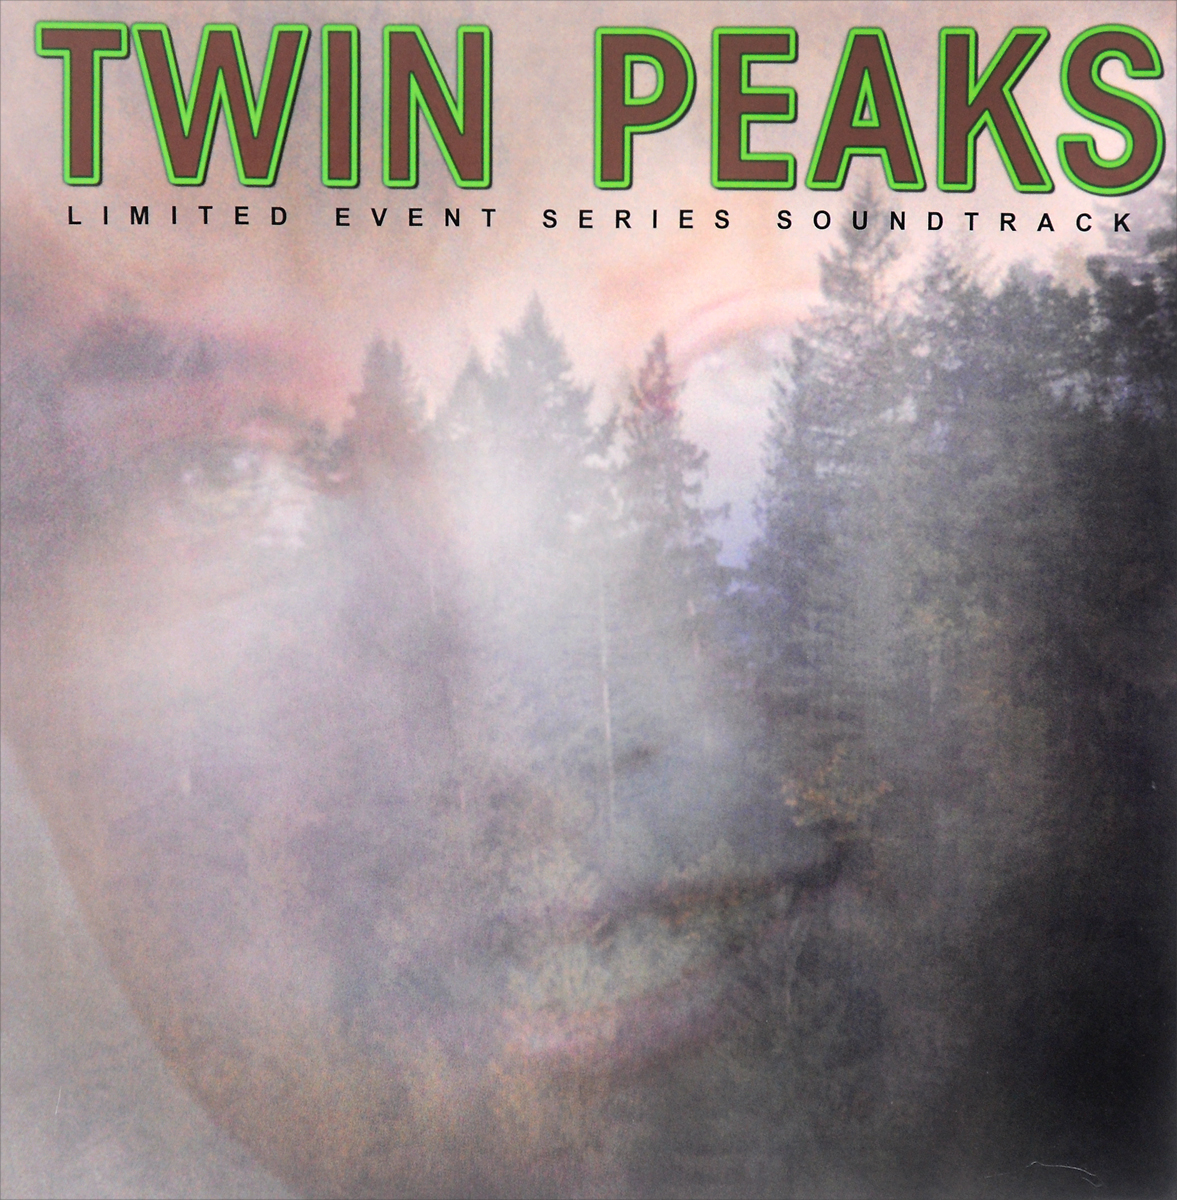 Twin Peaks. Limited Event Series Soundtrack (2 LP) виниловая пластинка various artists twin peaks limited event series soundtrack score